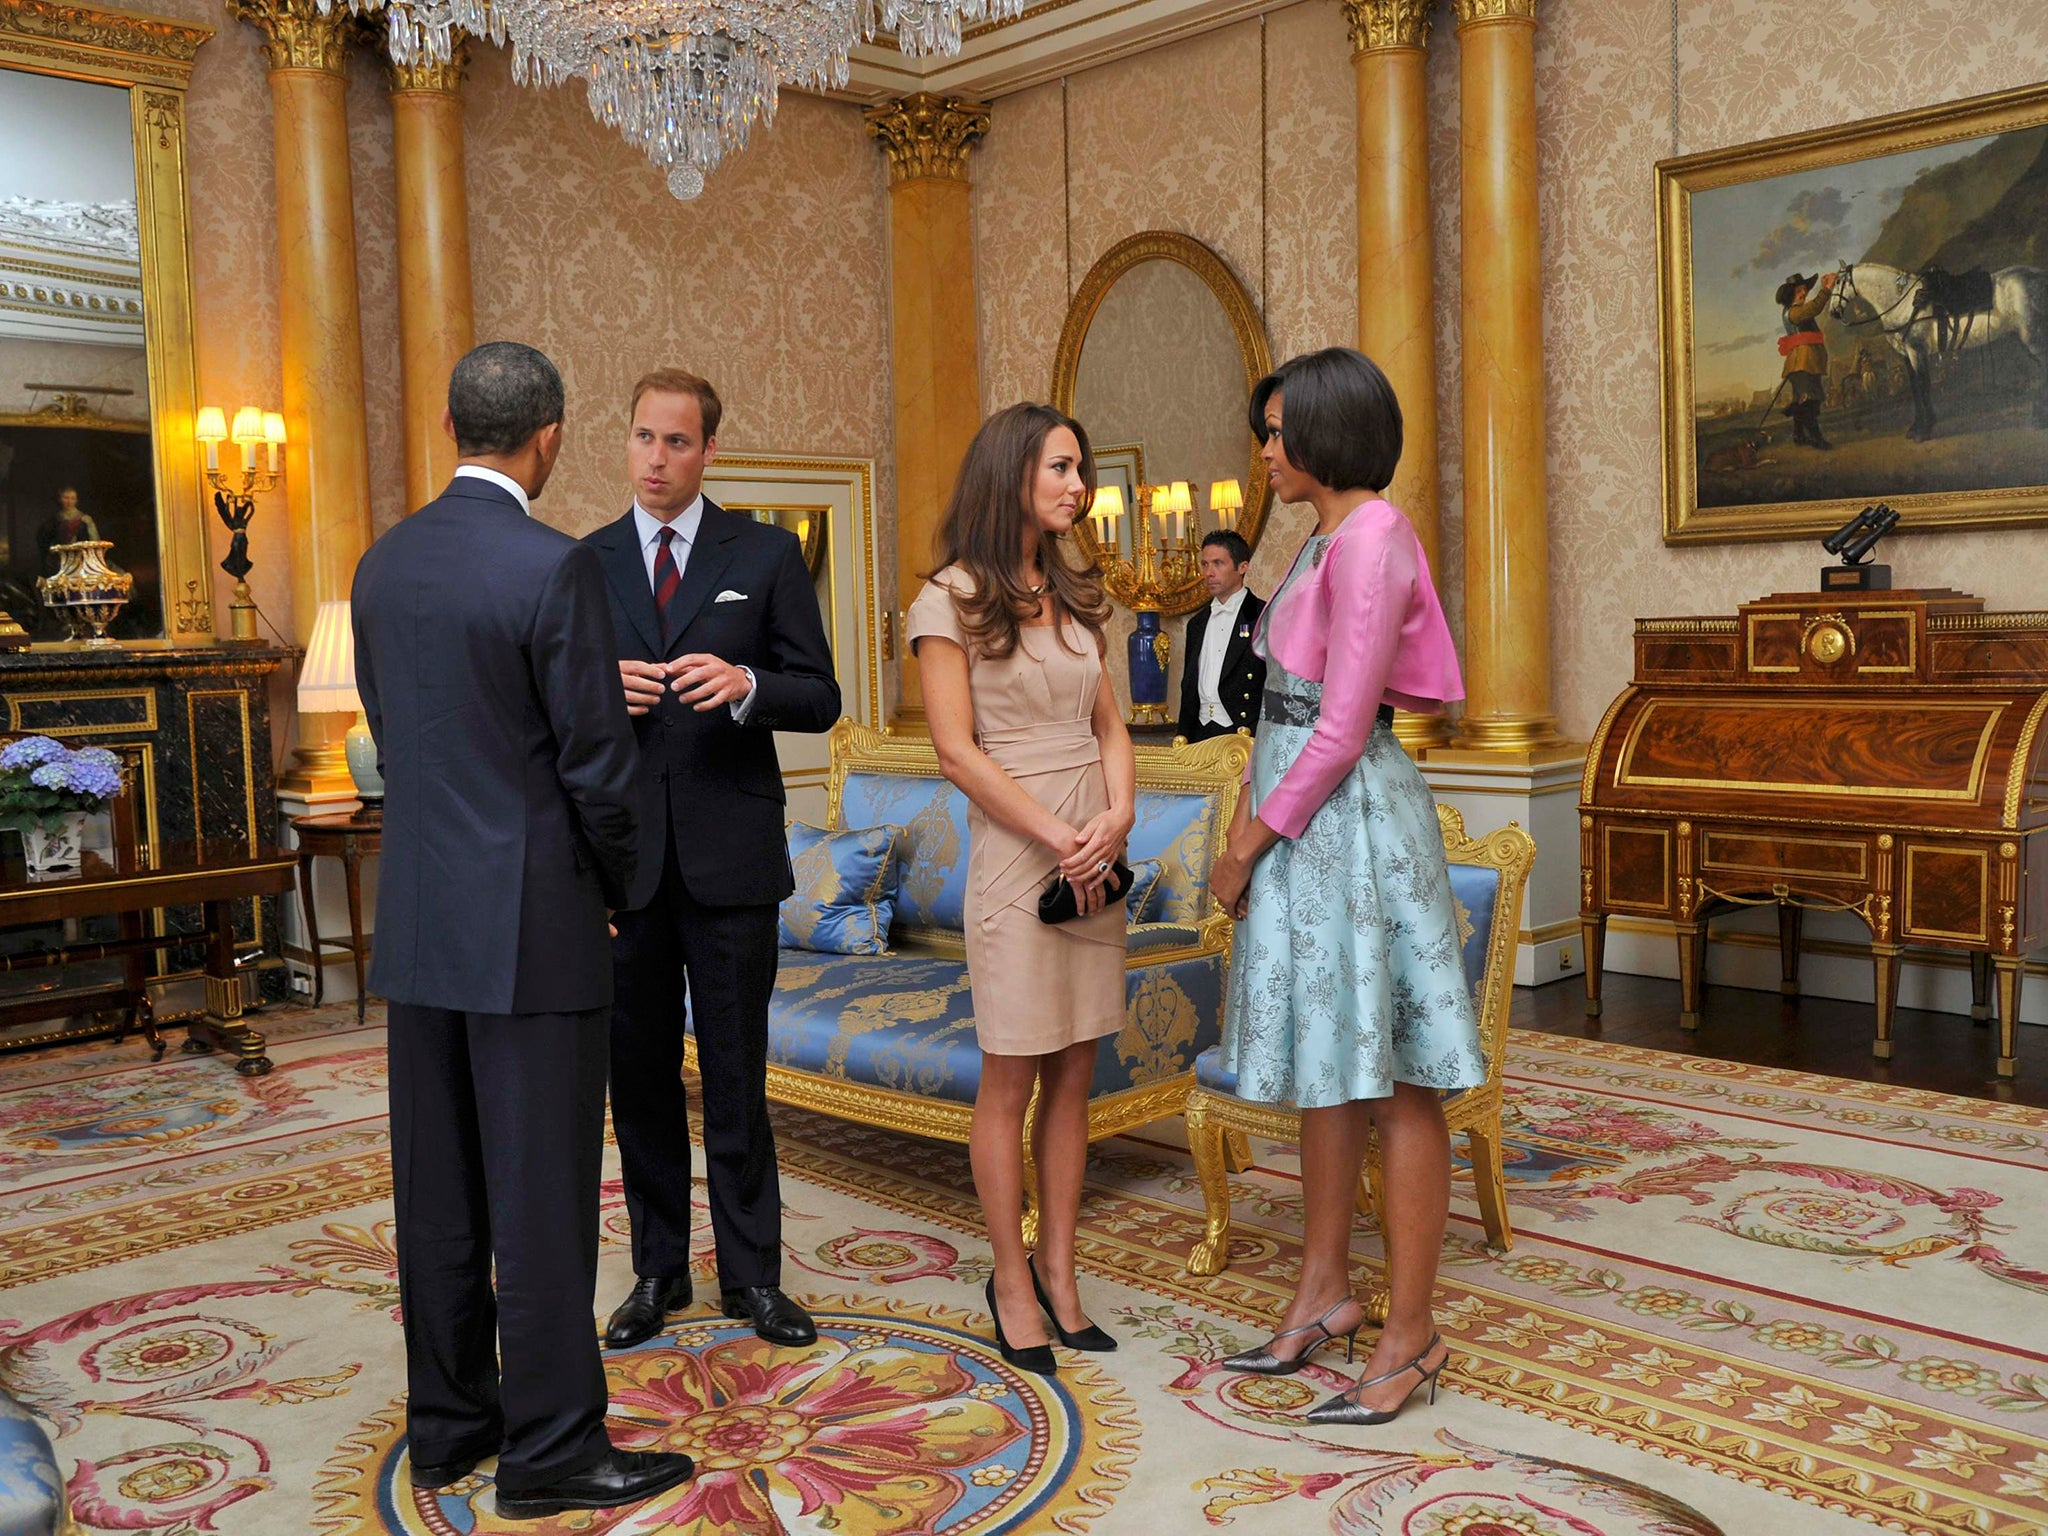 Prince William To Meet Obama In The Oval Office On